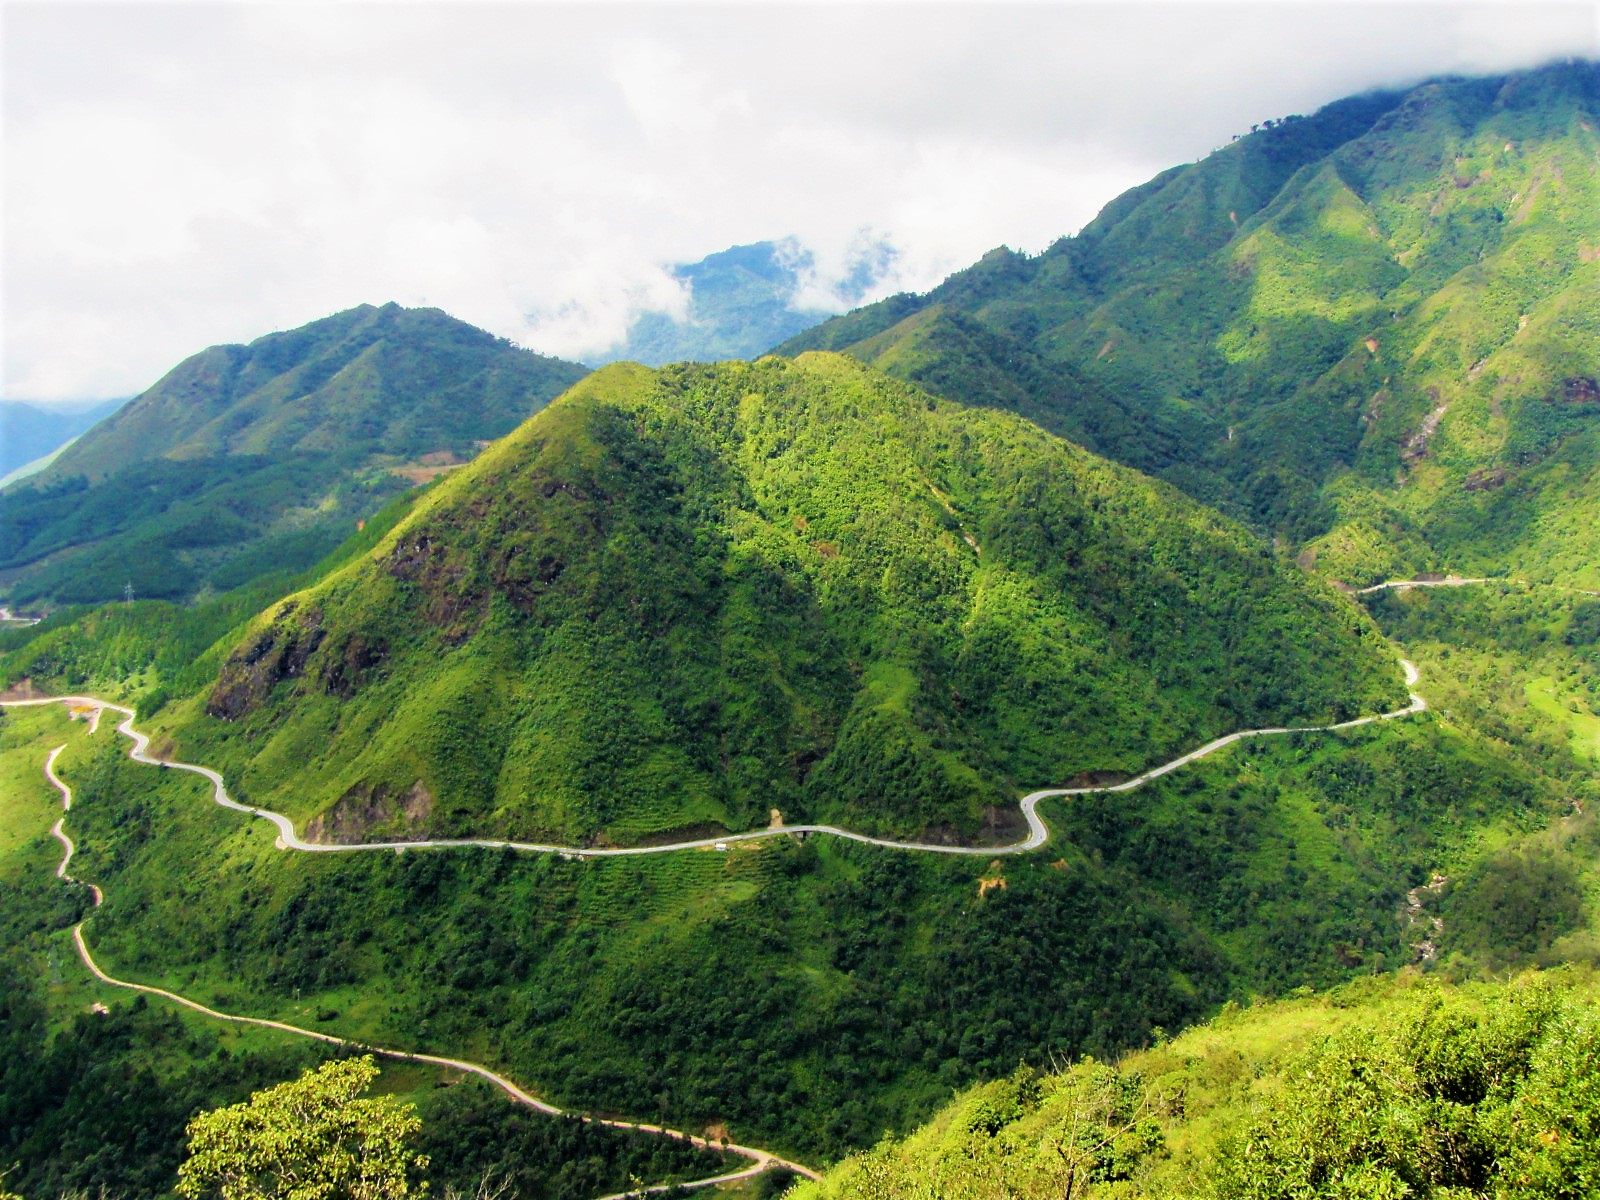 Traversing the northwest mountains, Tram Ton Pass (or O Quy Ho) is the highest in Vietnam